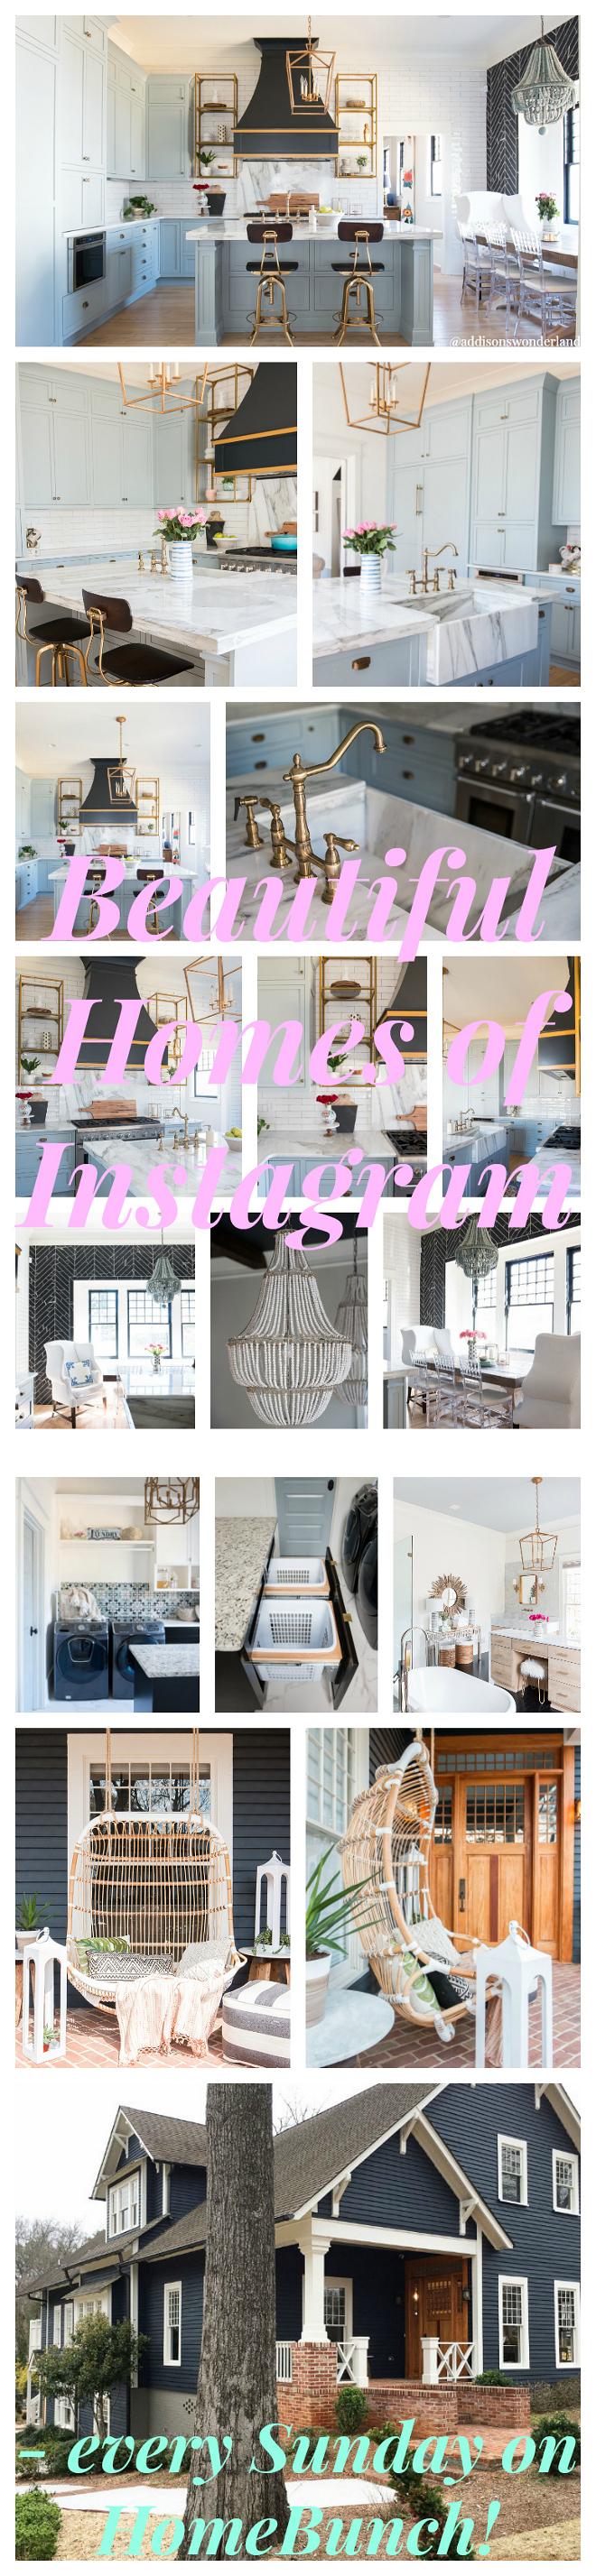 Beautiful Homes of Instagram - a weekly series showcasing real homes from instragram with all sources, including paint colors! Home Bunch